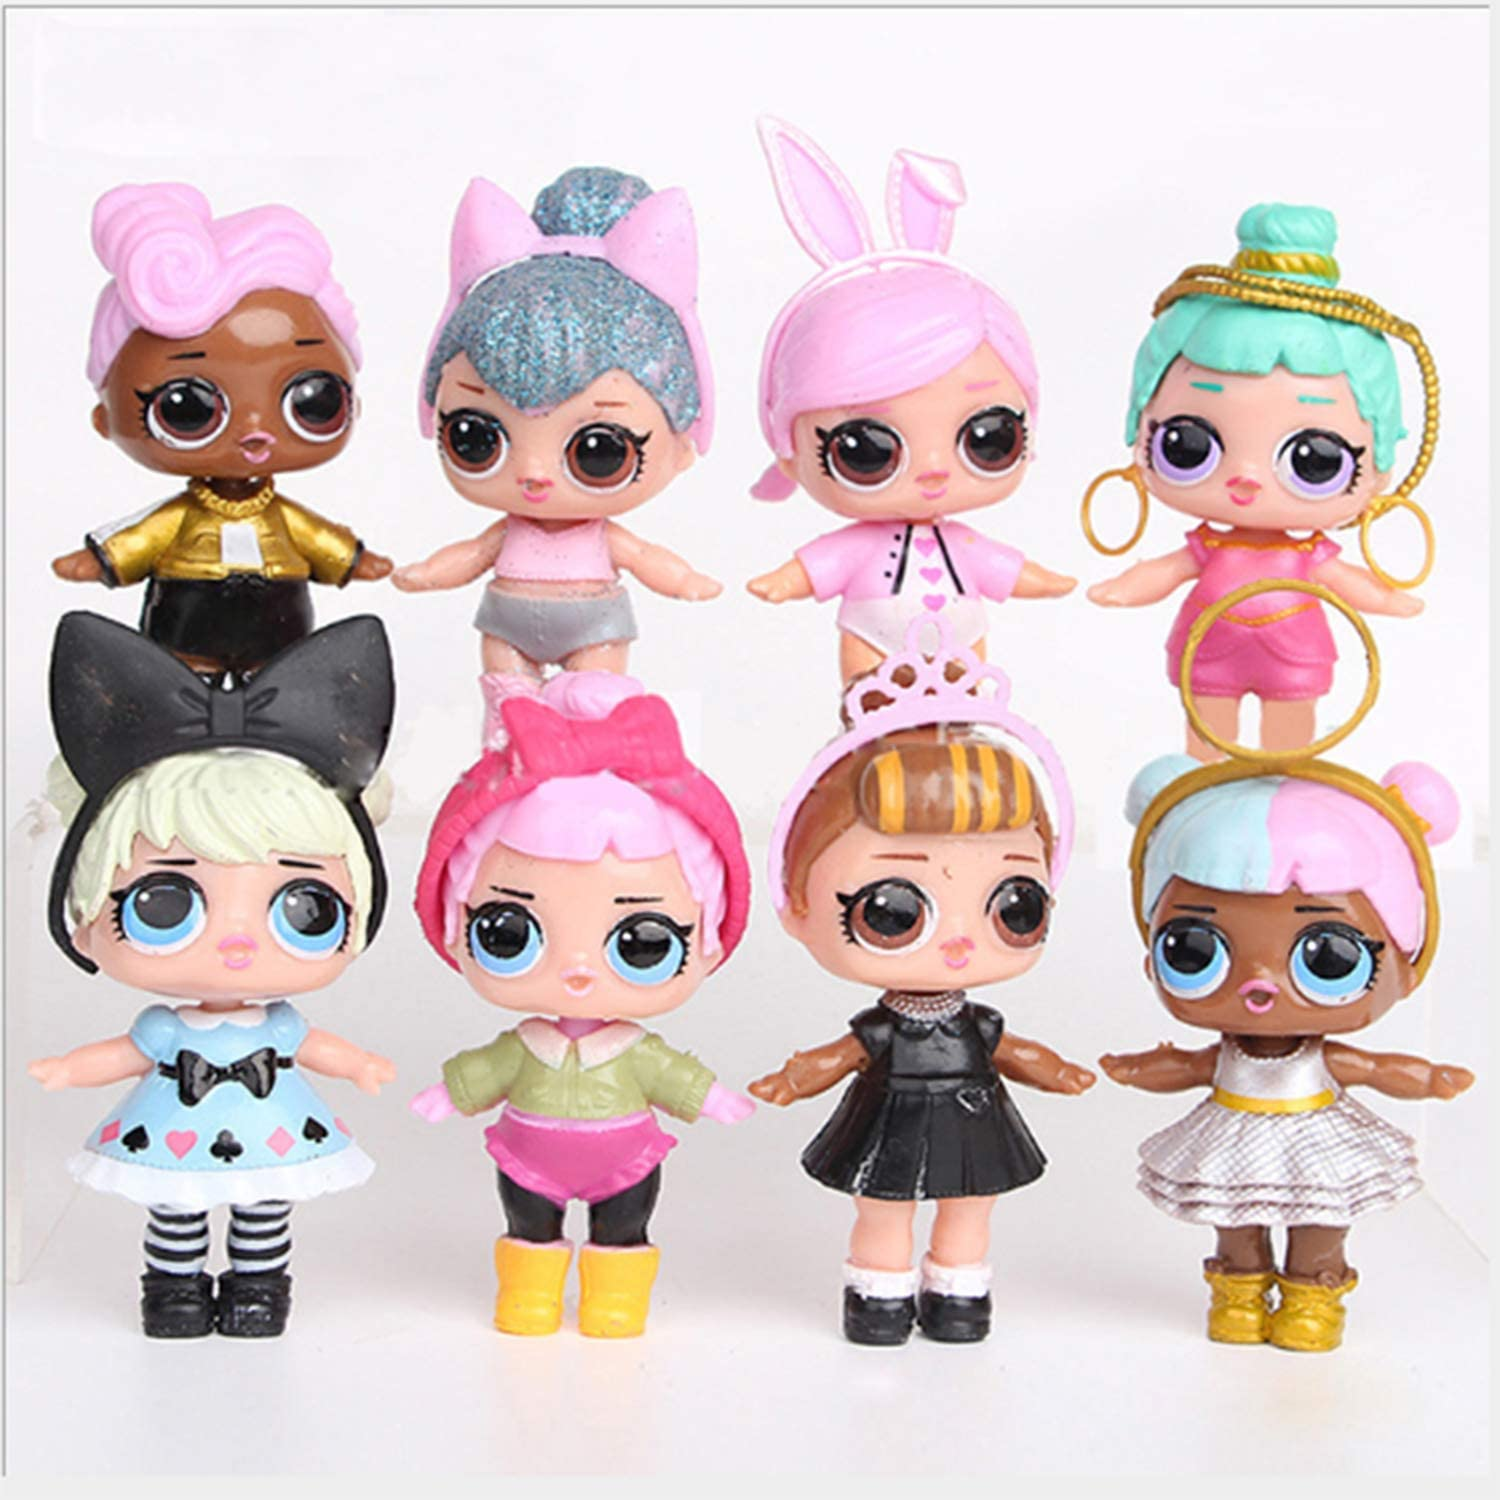 L.O. L S U R P R I S E! 8 Pieces LOL Dolls Toys for Girls Surprise Baby Doll Toys Kids Birthday 8cm Hobbies Action Toy Figures Best Gift